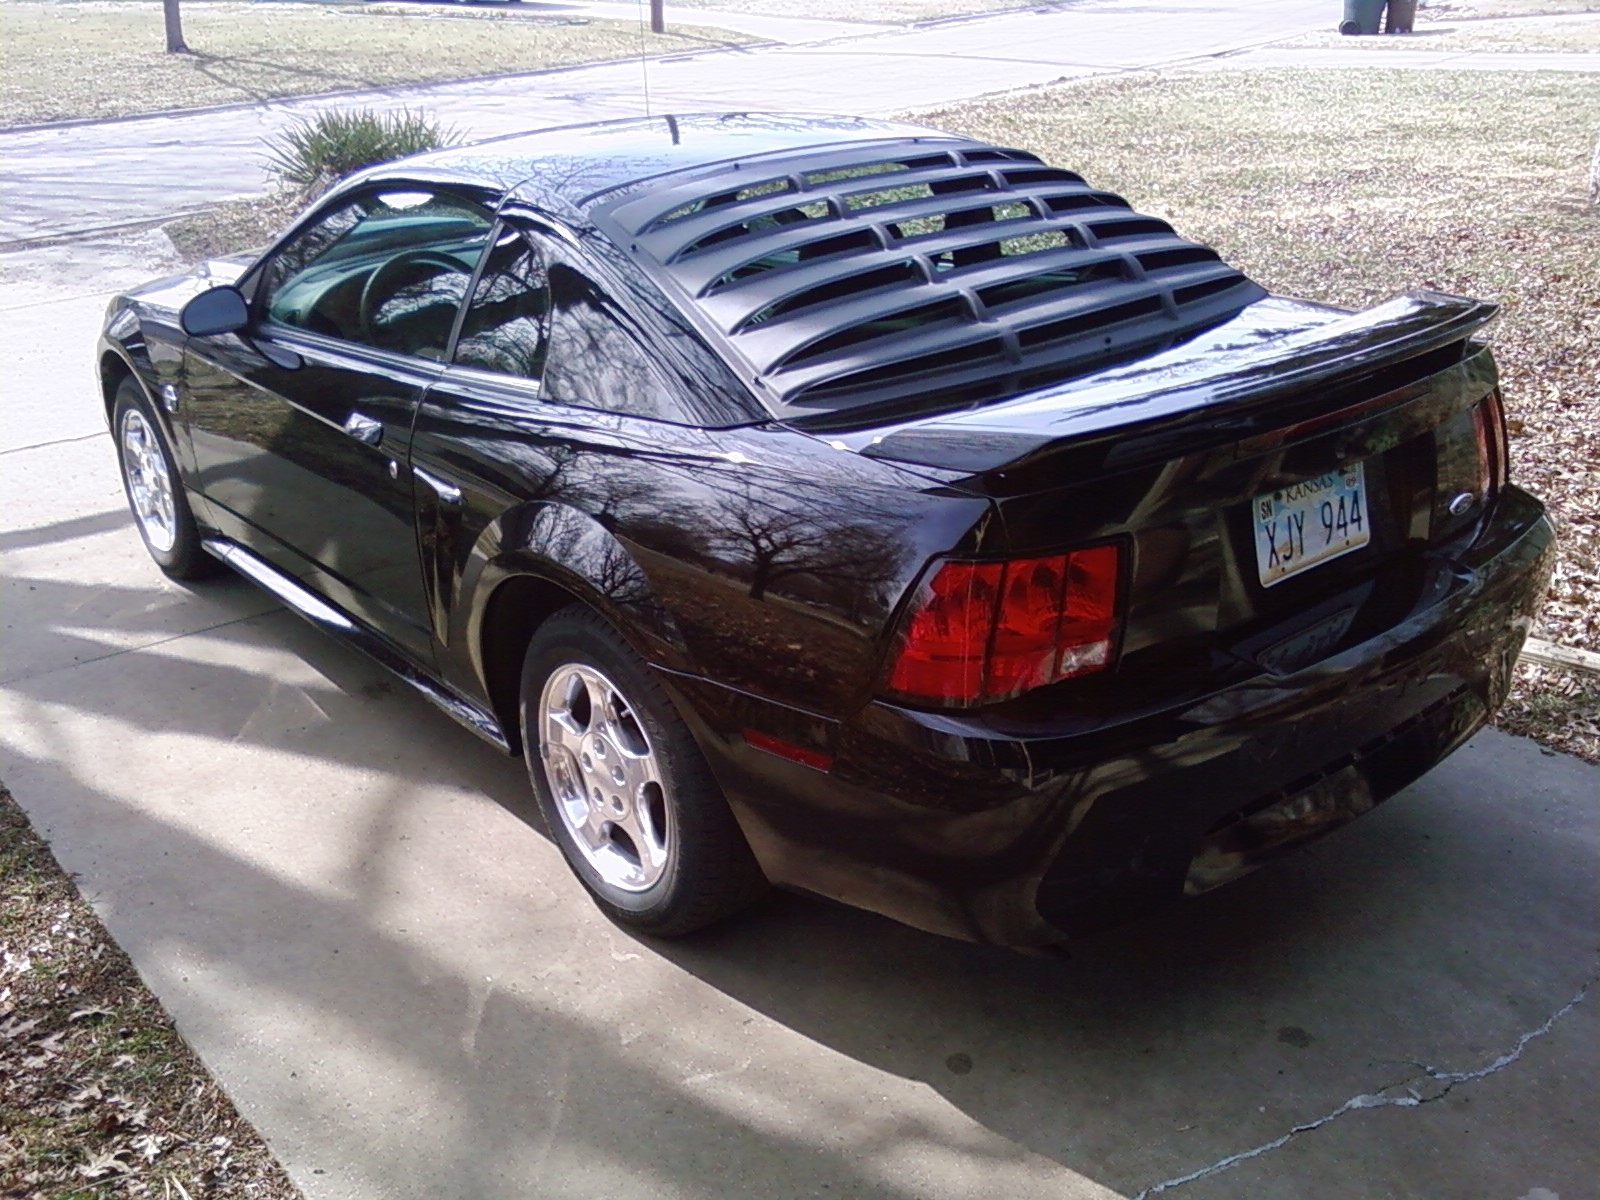 2004 ford mustang pictures cargurus for 1970 mustang rear window louvers